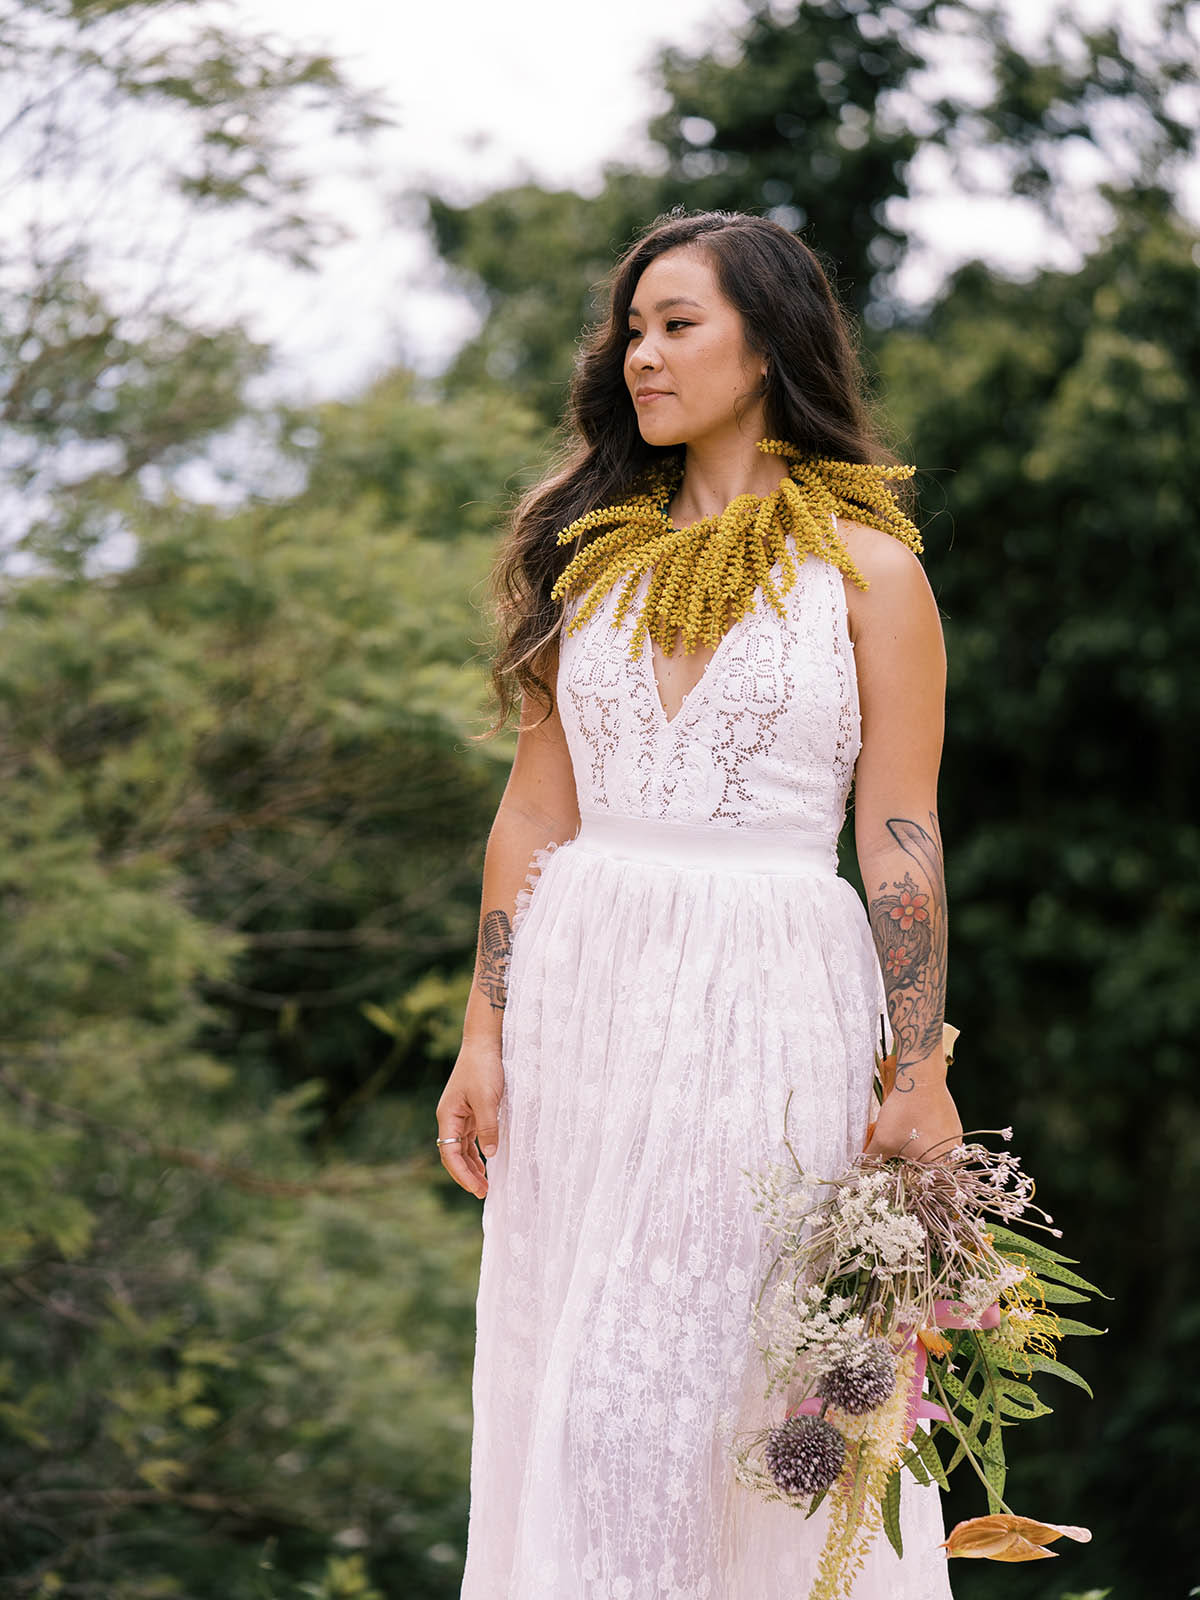 Indigenous Love in Hawaii - Same-Sex Wedding Inspiration - Dancing With Her - Megan Moura Photography